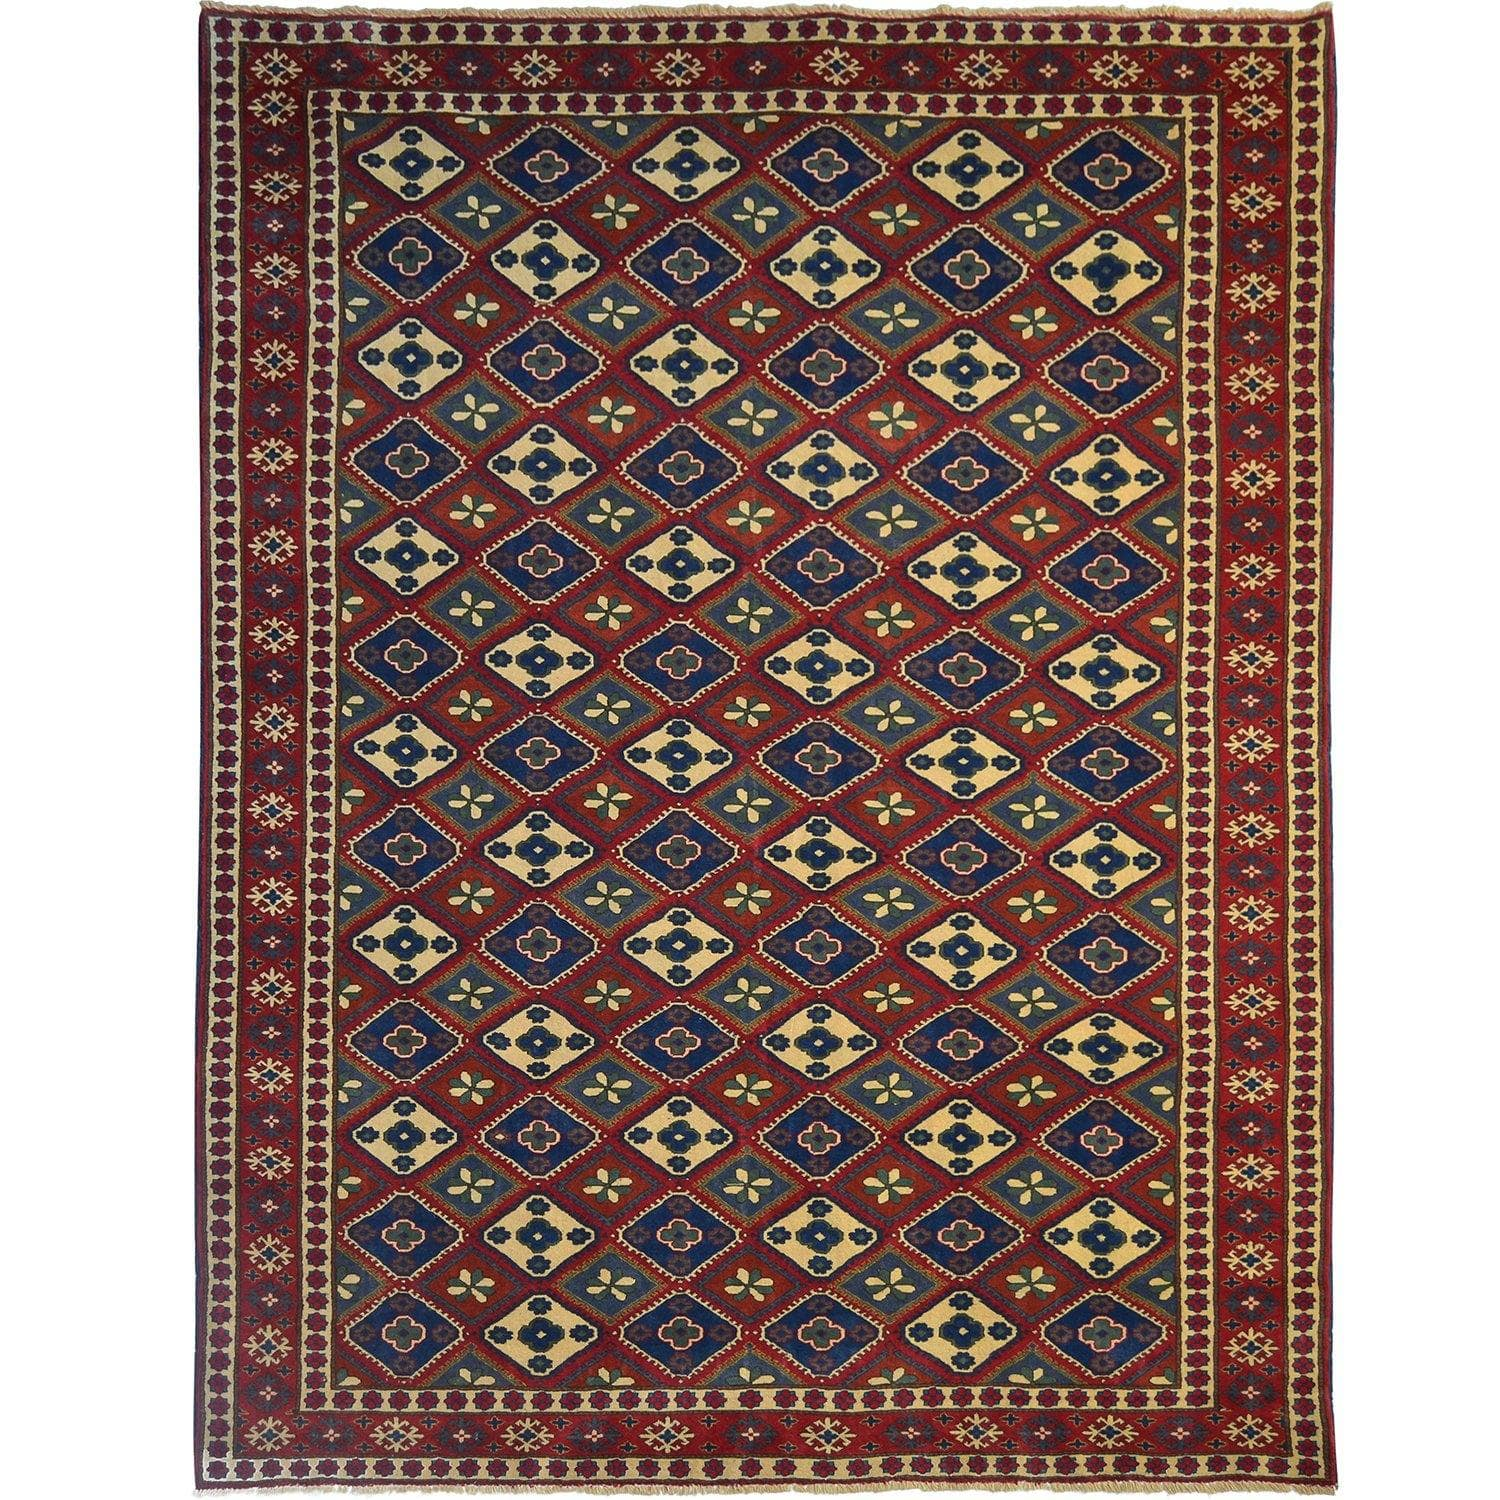 Fine Hand-knotted Persian Tribal Shirvan Rug 200cm x 280cm Persian-Rug | House-of-Haghi | NewMarket | Auckland | NZ | Handmade Persian Rugs | Hand Knotted Persian Rugs